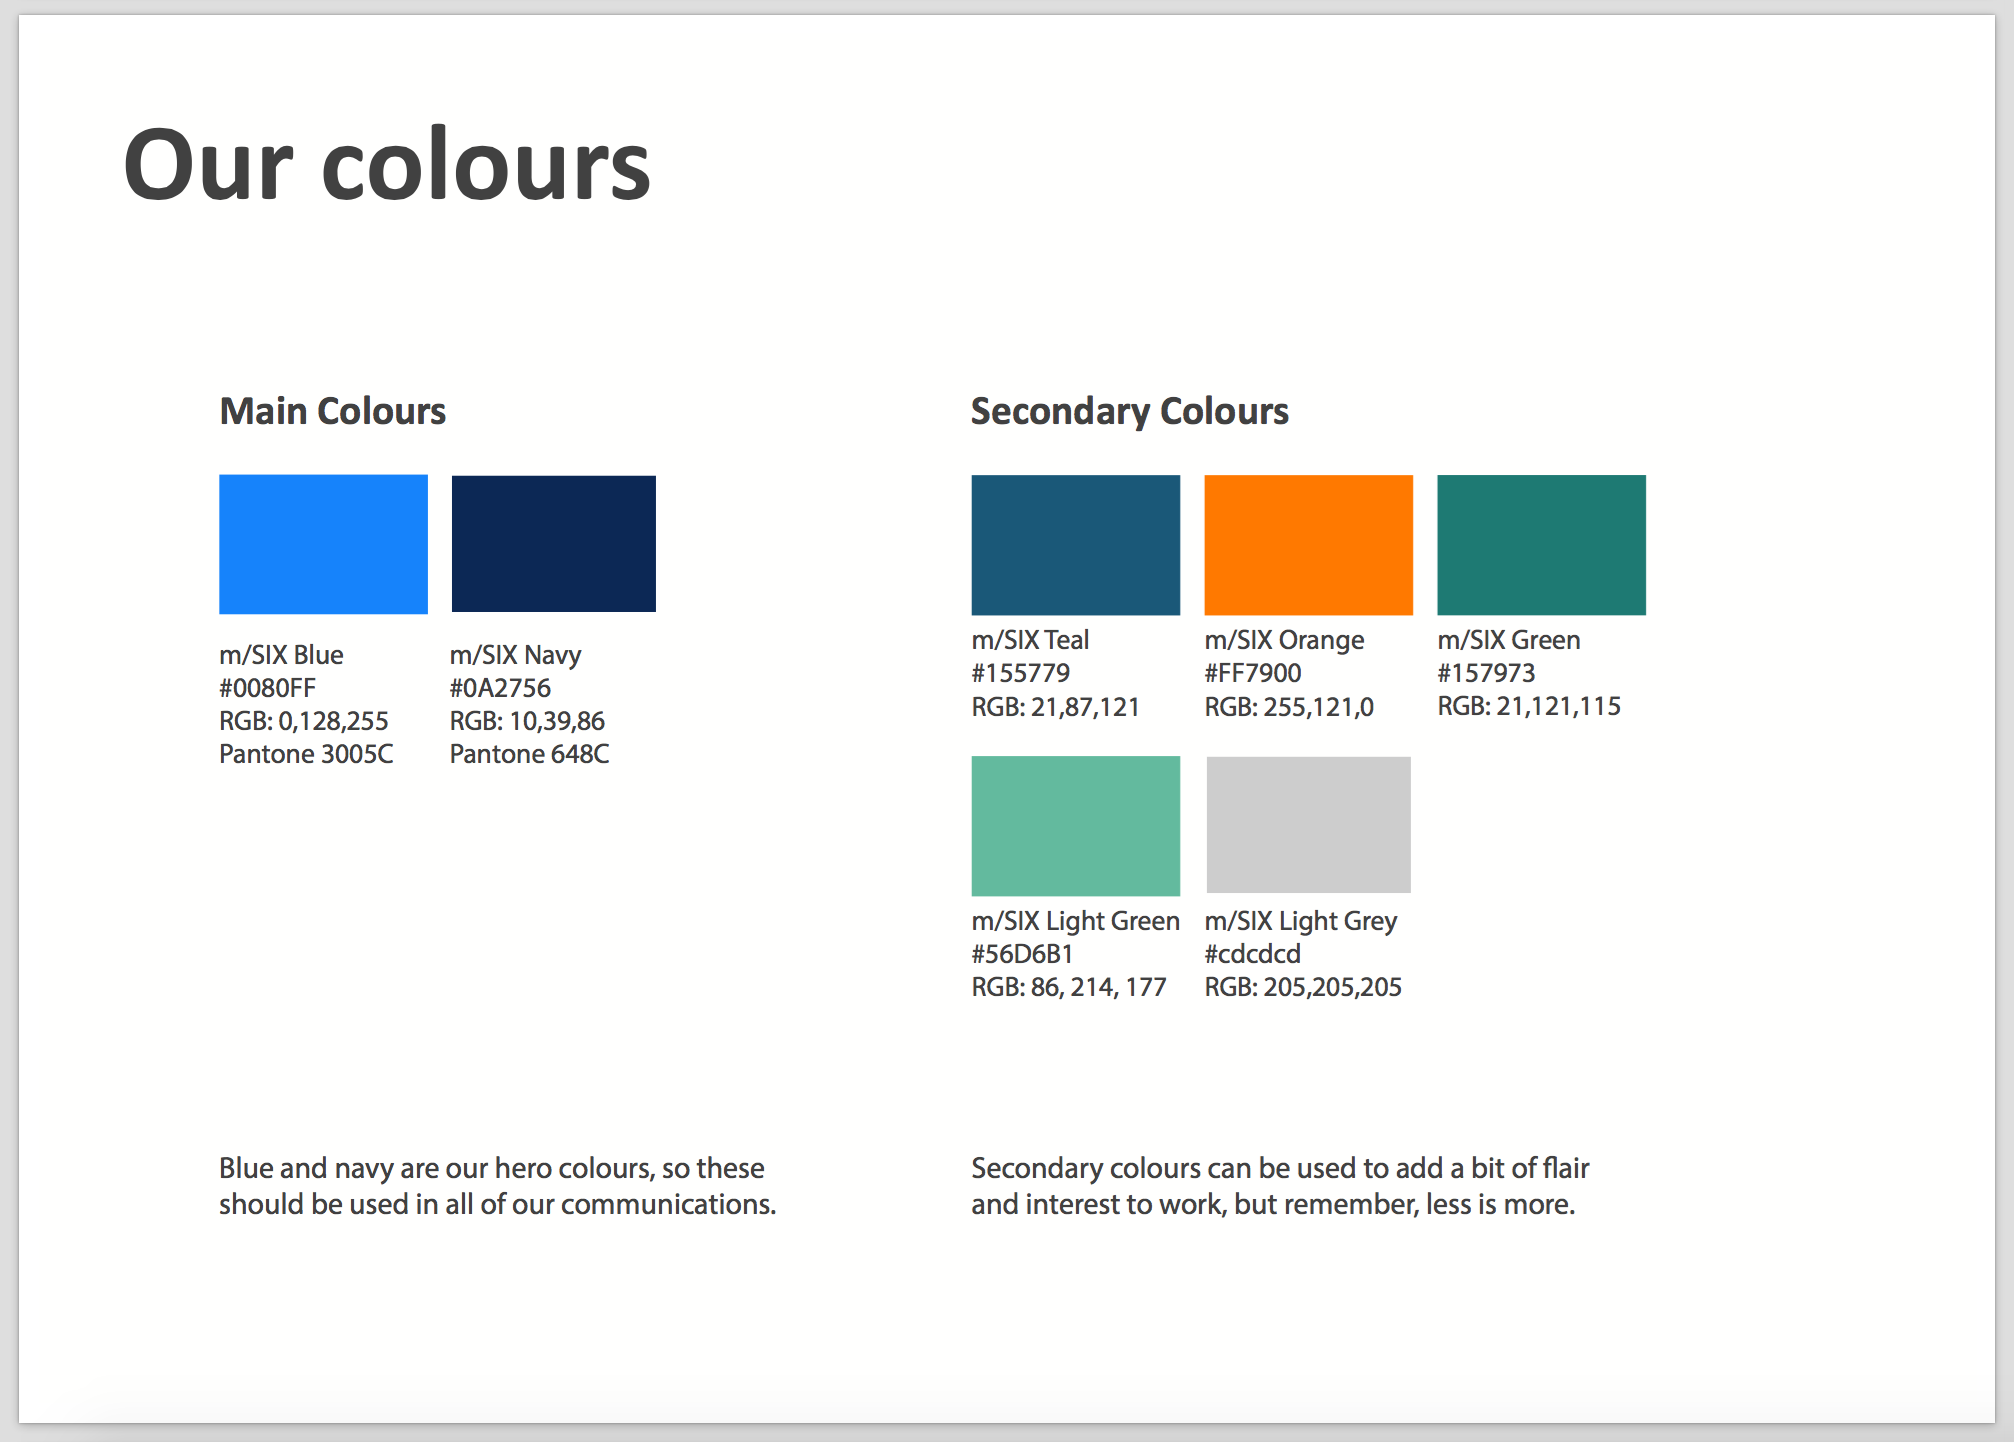 Our colour guidelines